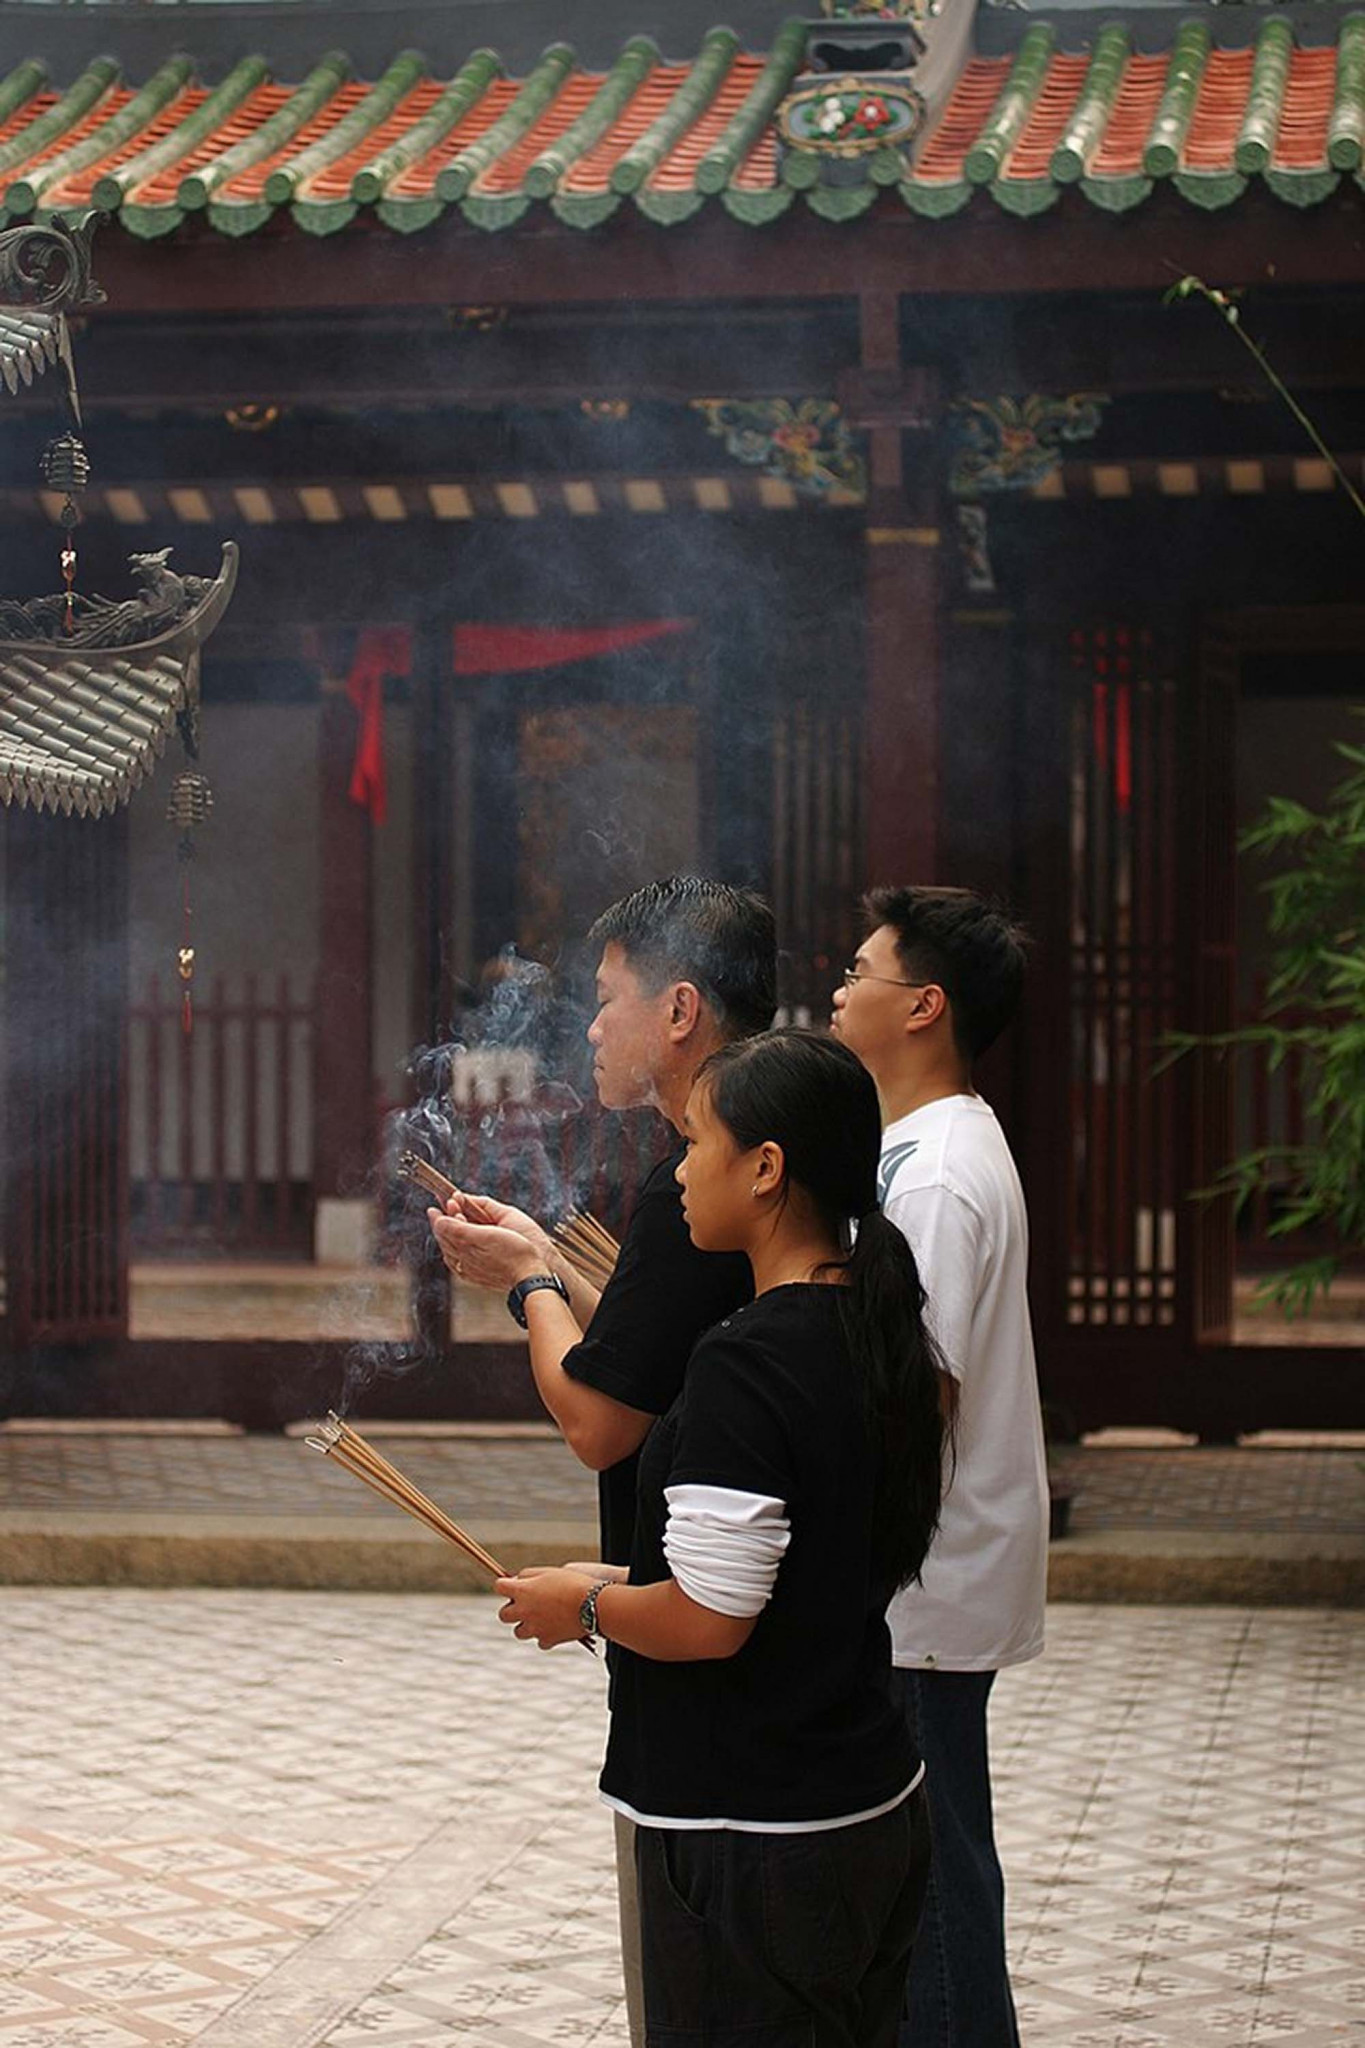 Lay Buddhists performing a ritual, Thian Hock Keng temple, Singapore